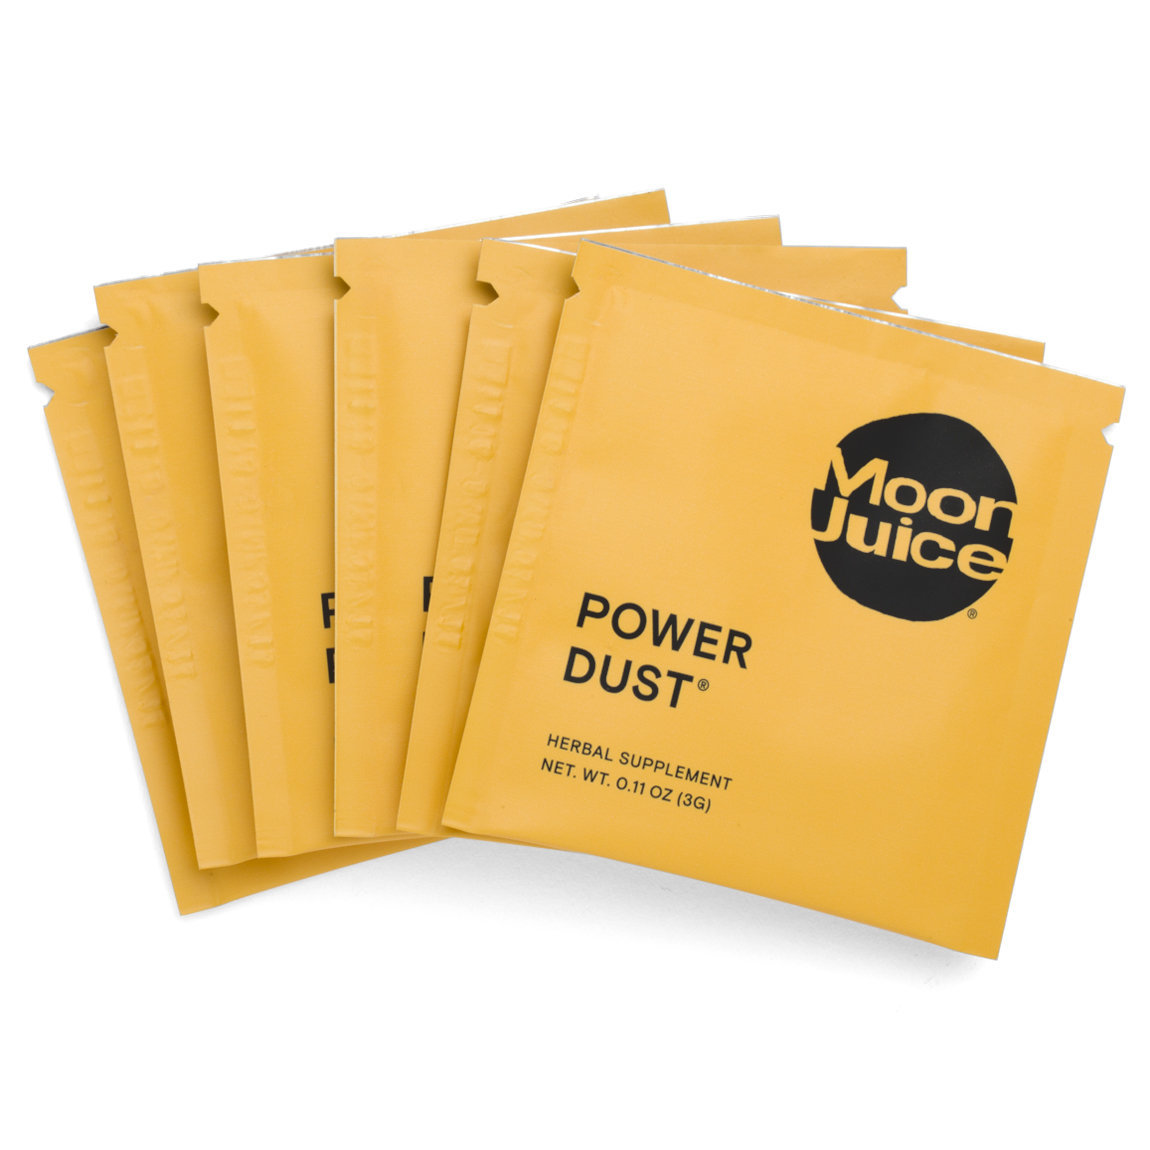 Moon Juice Power Dust Sachets product swatch.